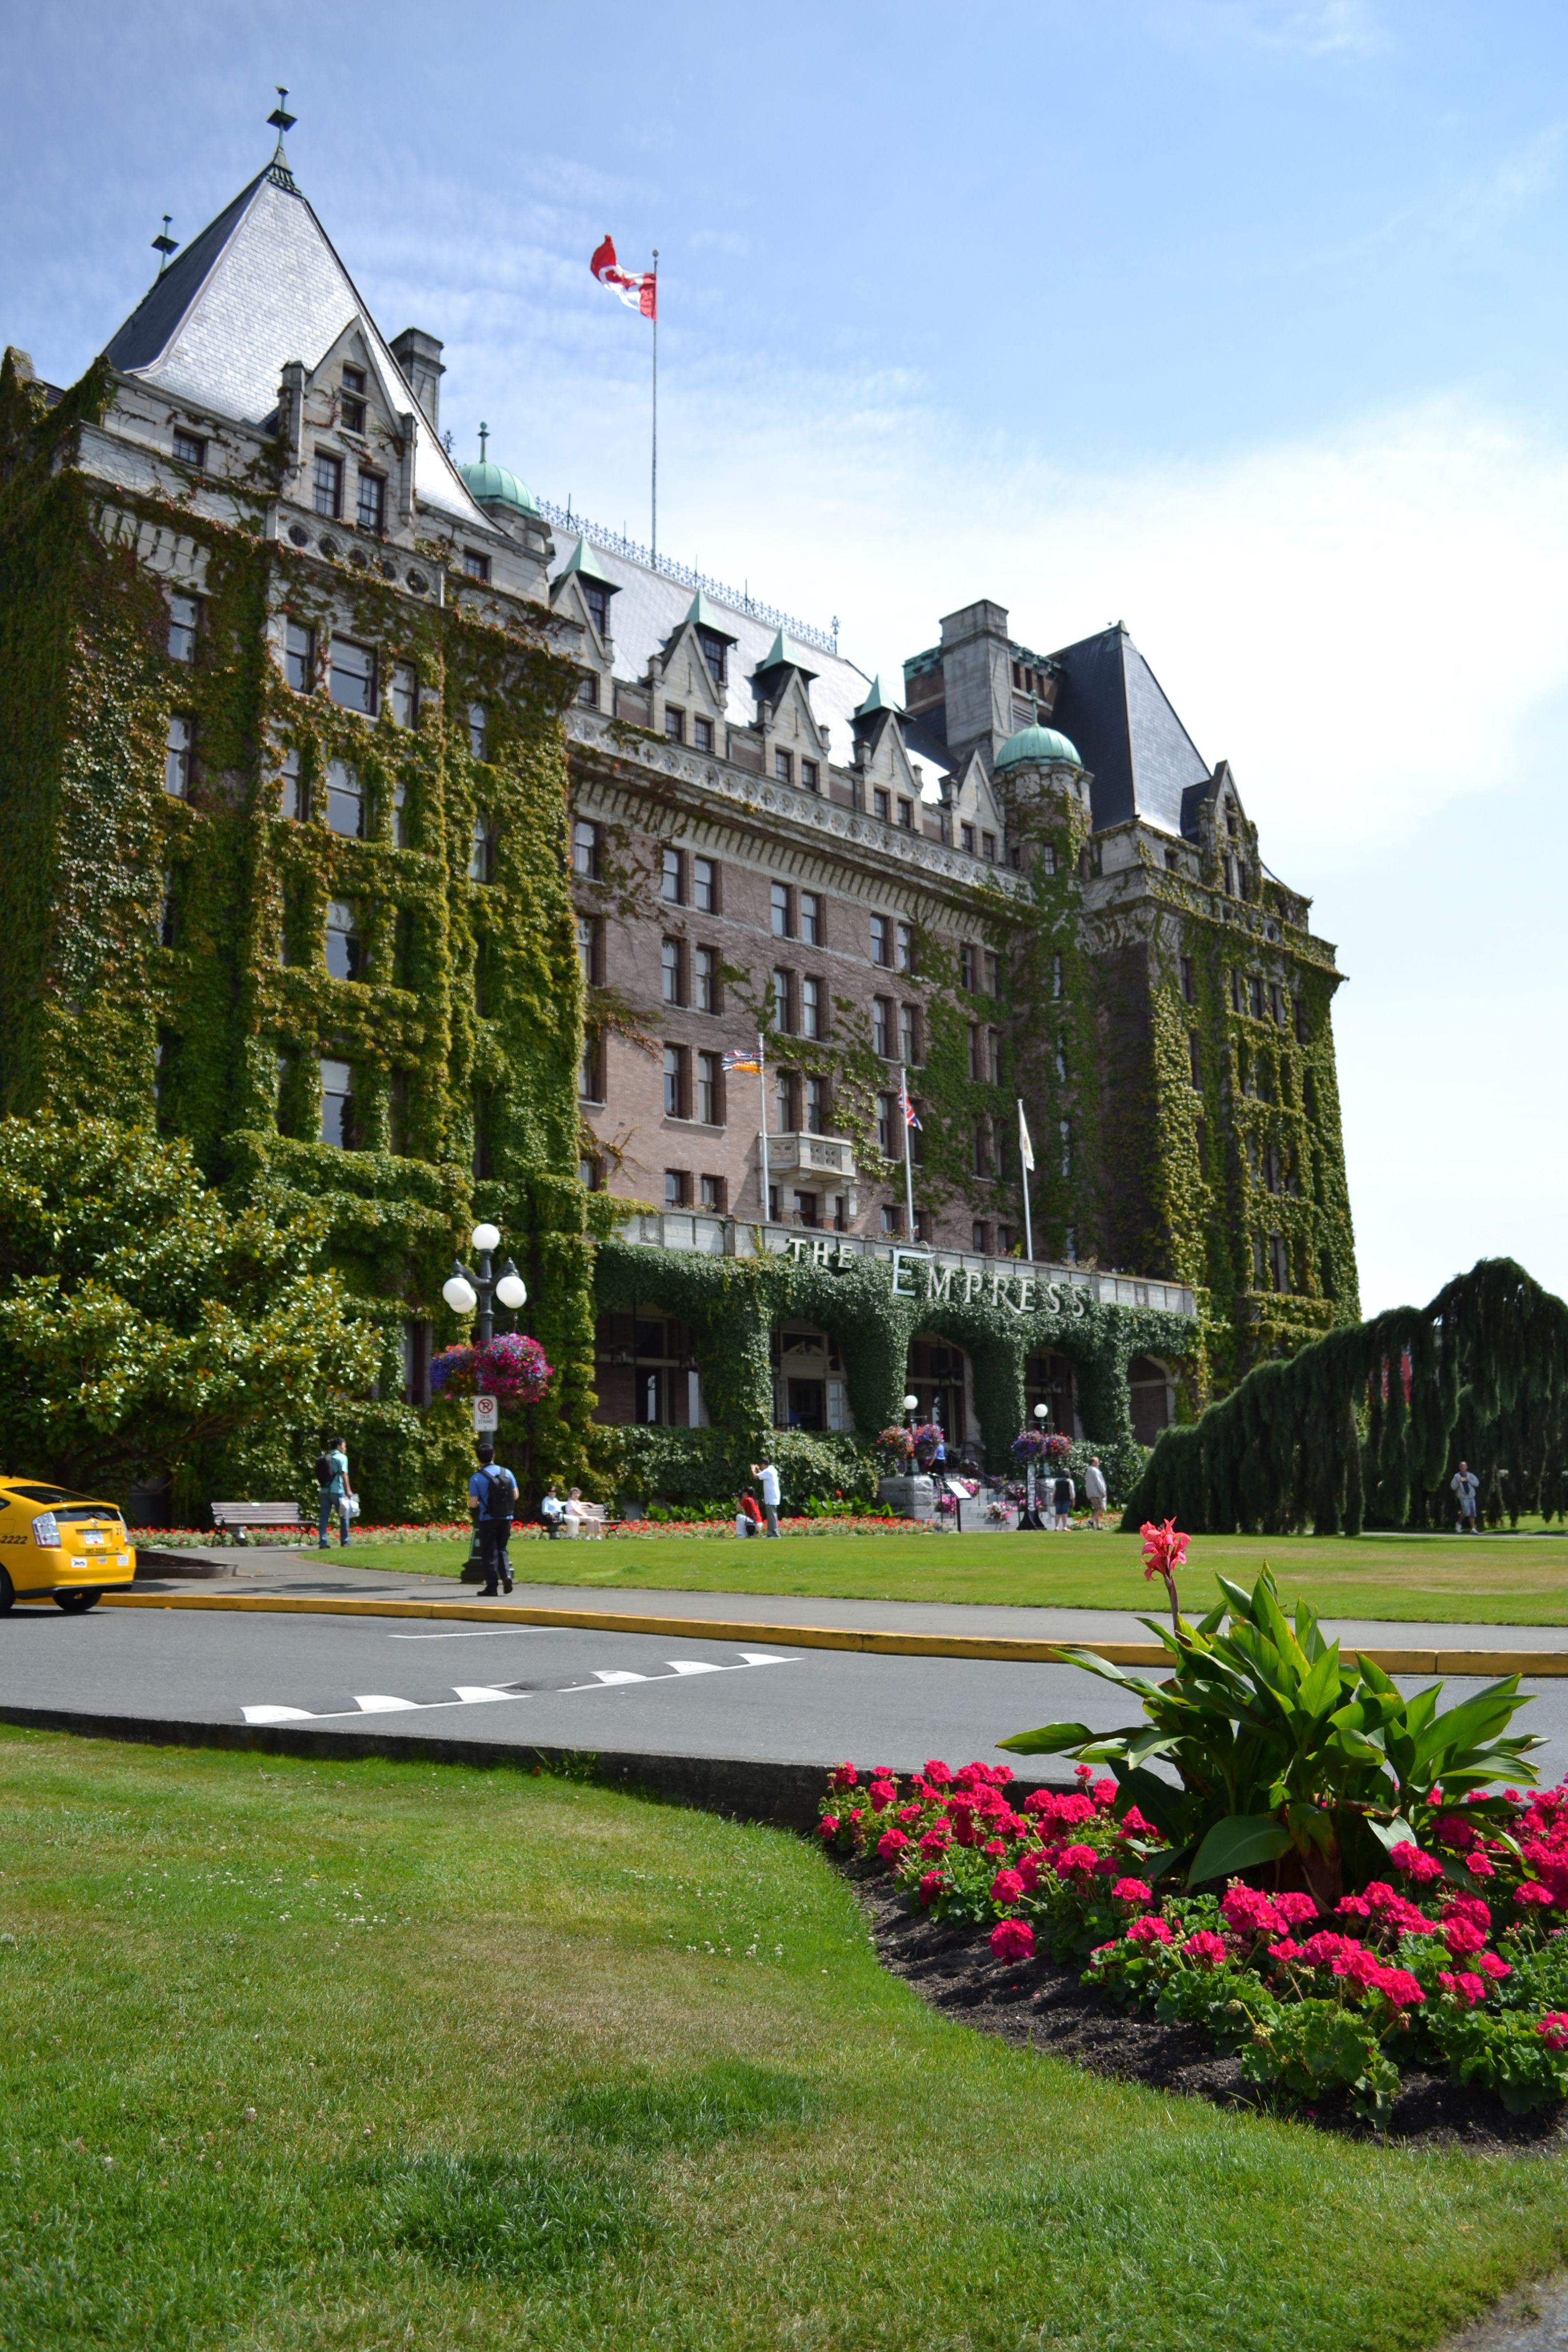 The Empress Hotel, Victoria, British Columbia. This hotel serves a formal high tea every afternoon and it's delicious:)